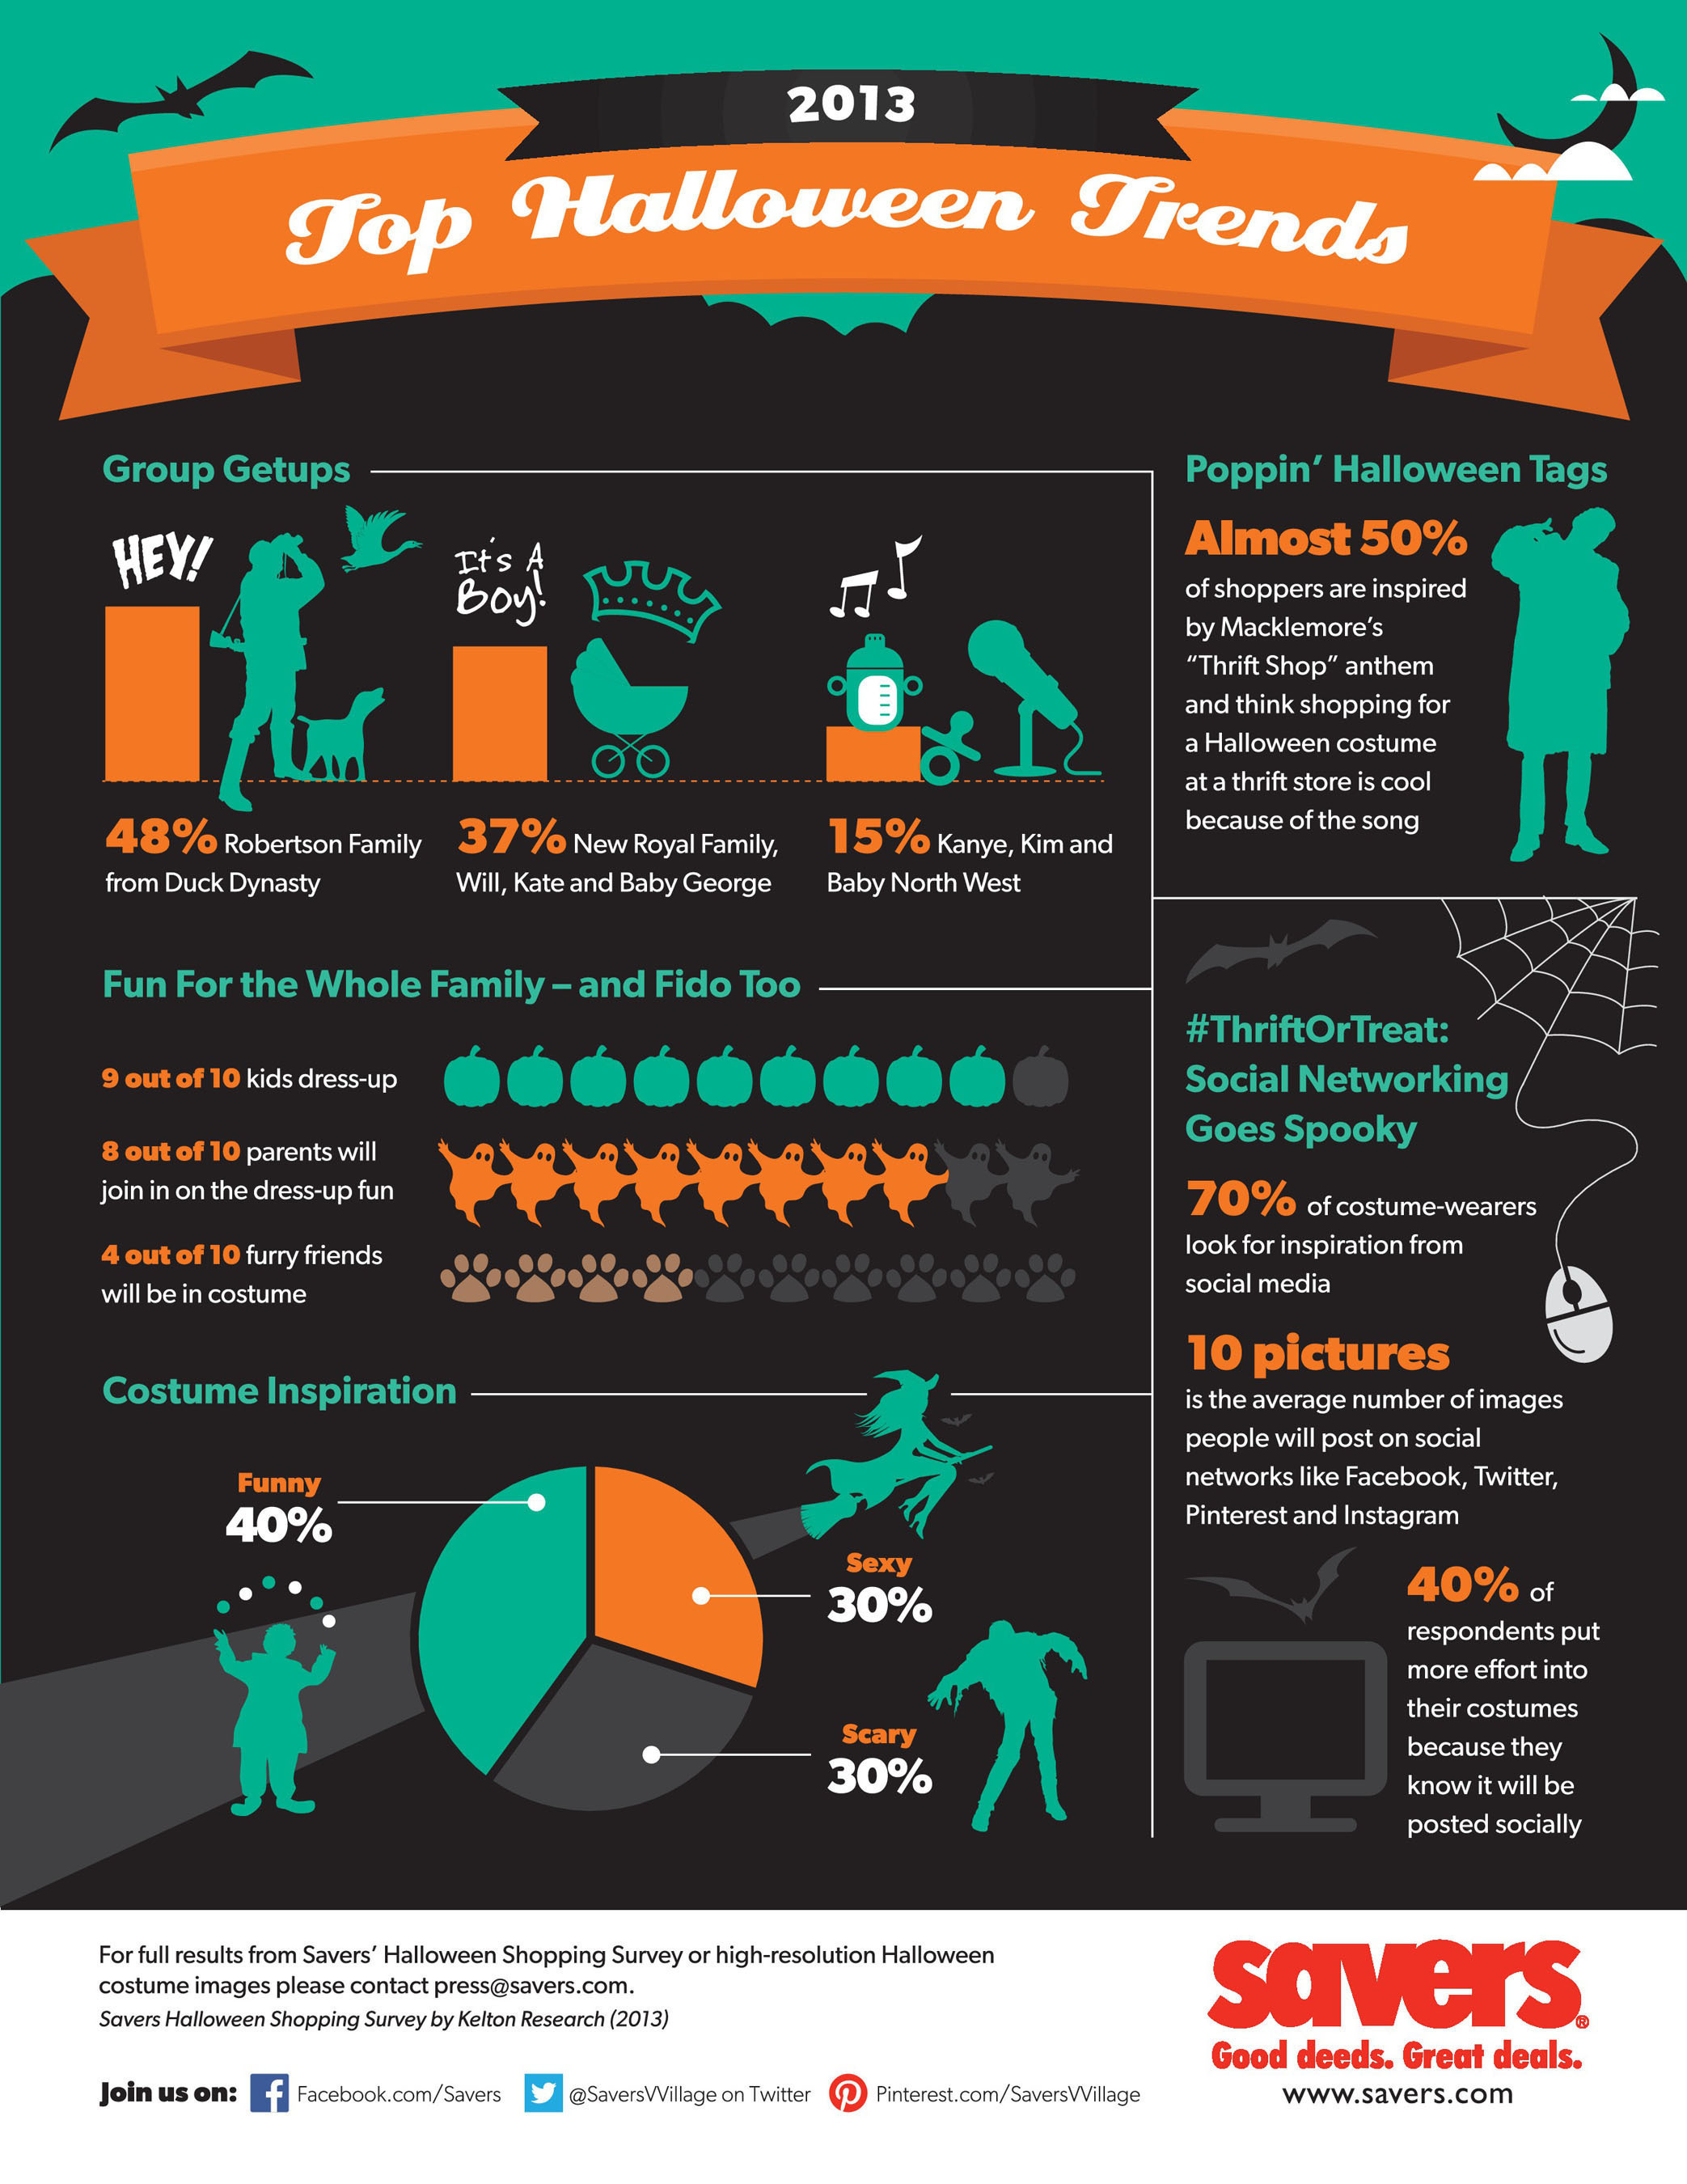 Savers 2013 Top Halloween Trends- Annual Survey Data. (PRNewsFoto/Savers, Inc.) (PRNewsFoto/SAVERS, INC.)